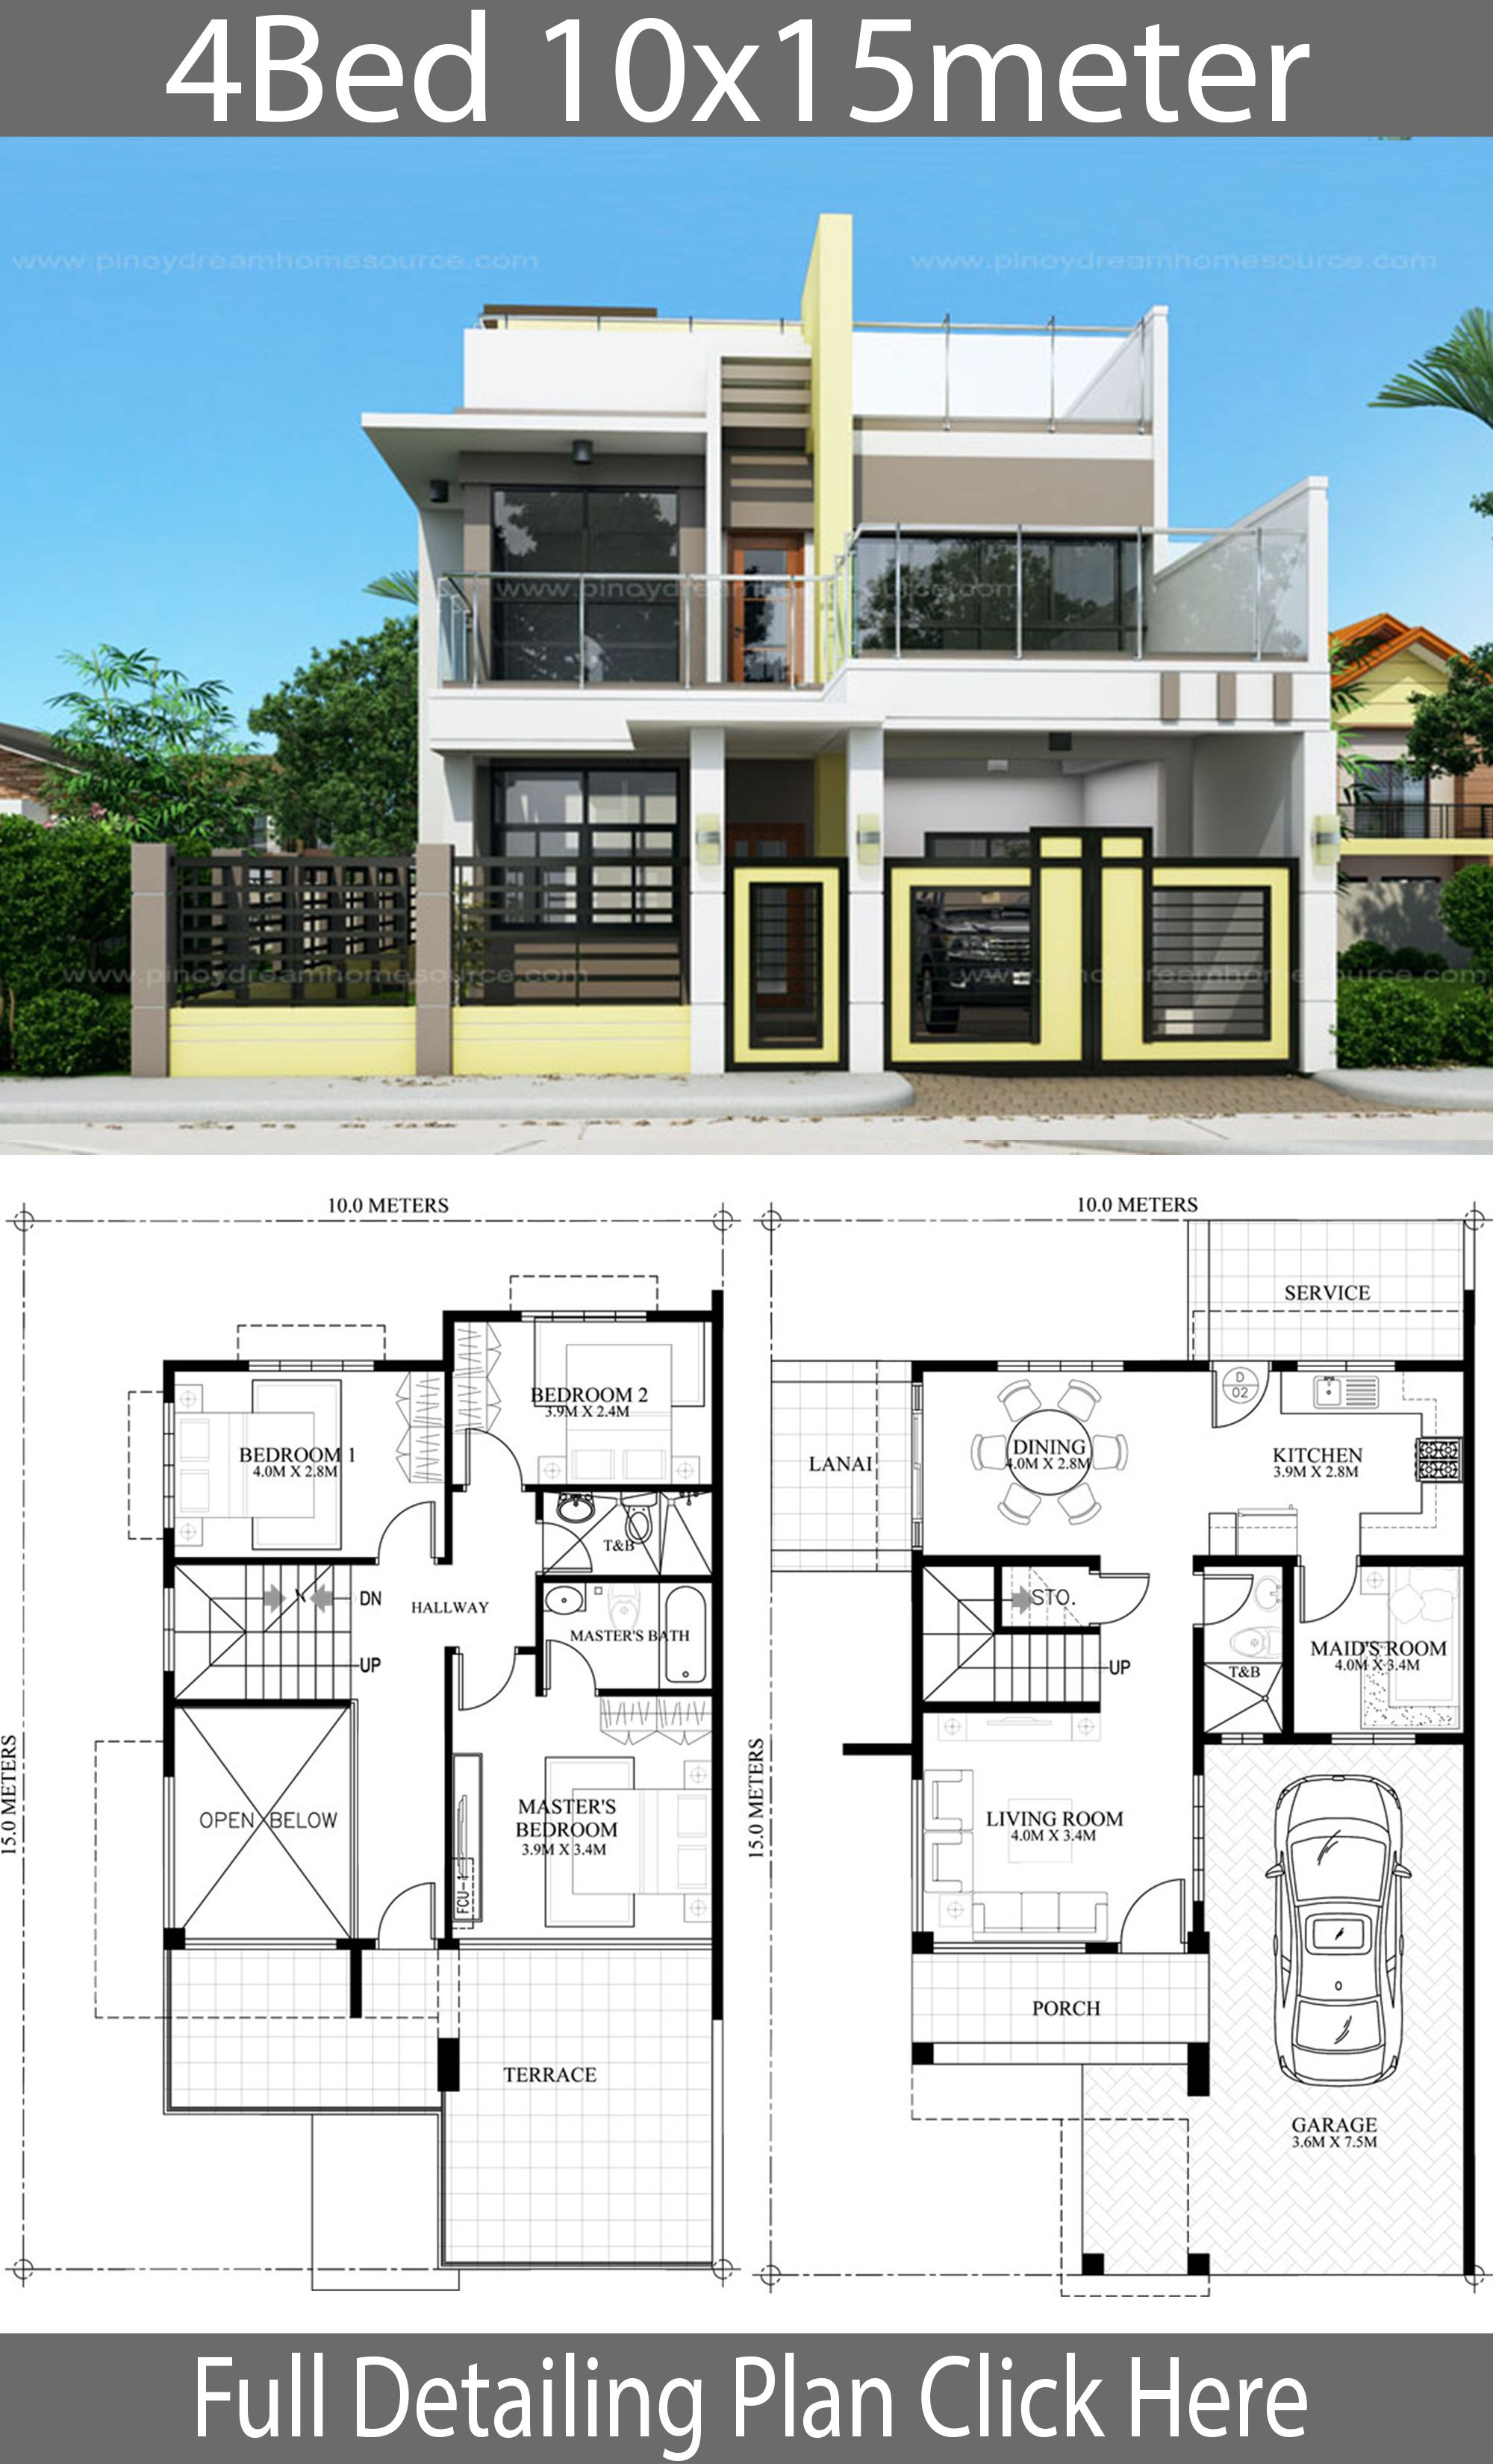 Home design plan 12x12m with 12 bedrooms - House Idea  House